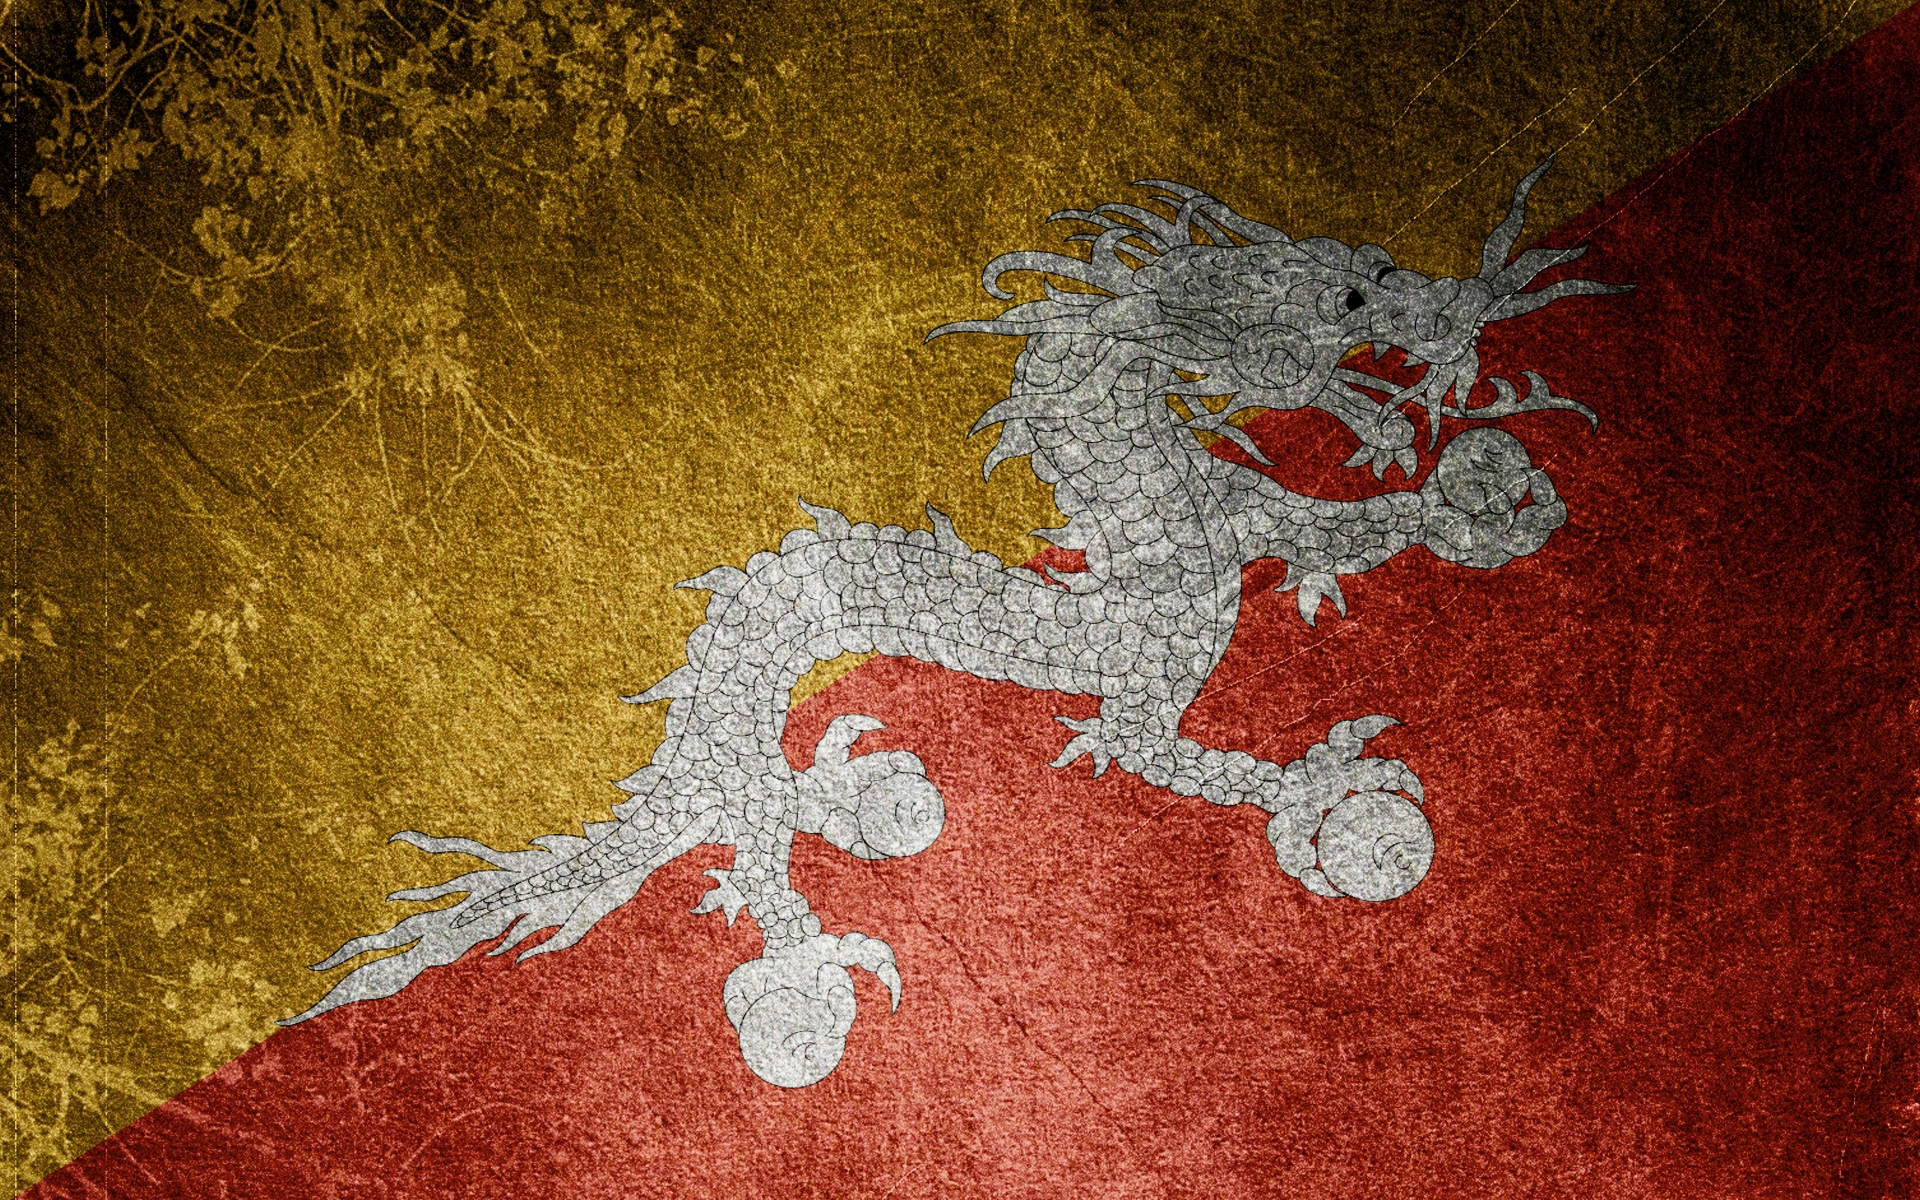 dragon, flag, texture, background